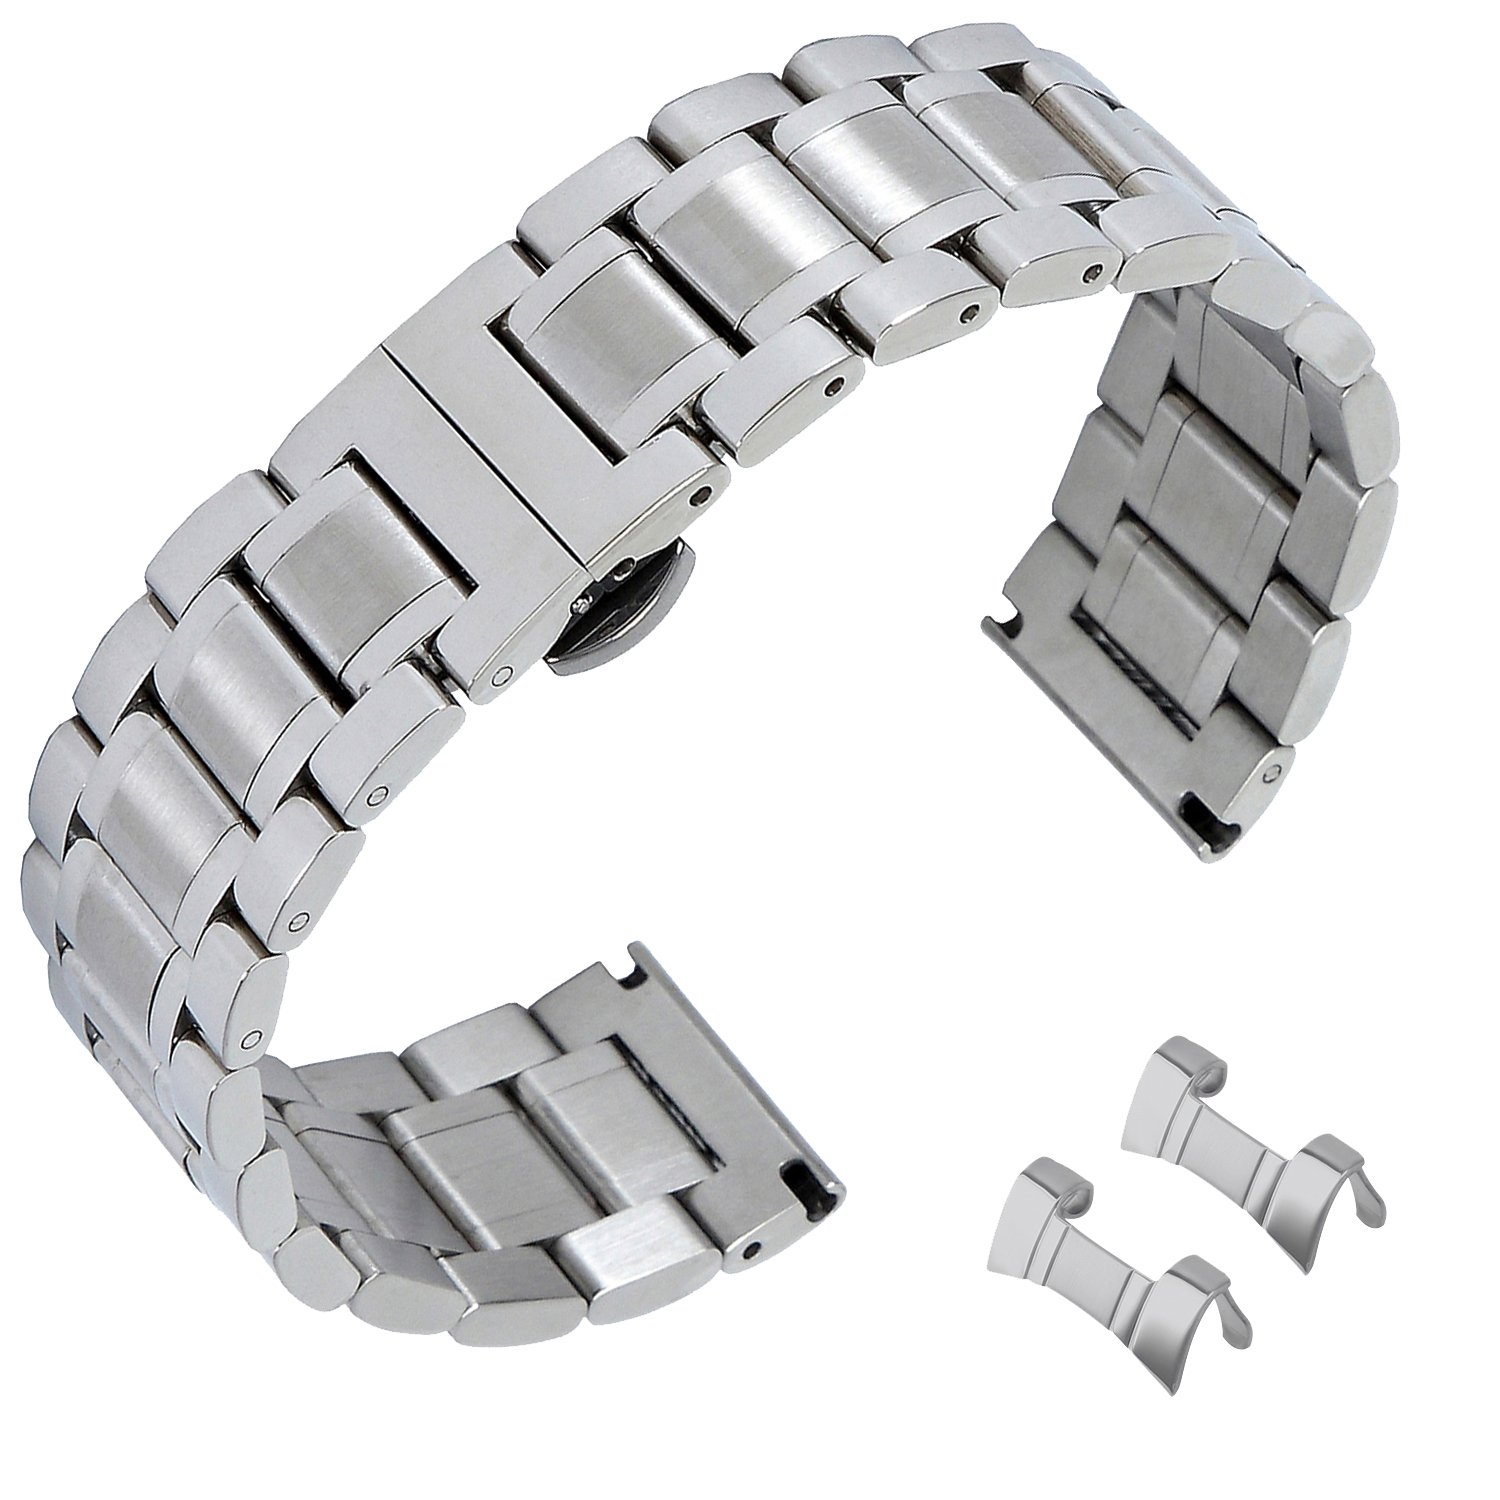 19mm Stainless Steel Watch Bands Replacement Strap Clasp Strap Bands Strap Watchband Strap Wristband